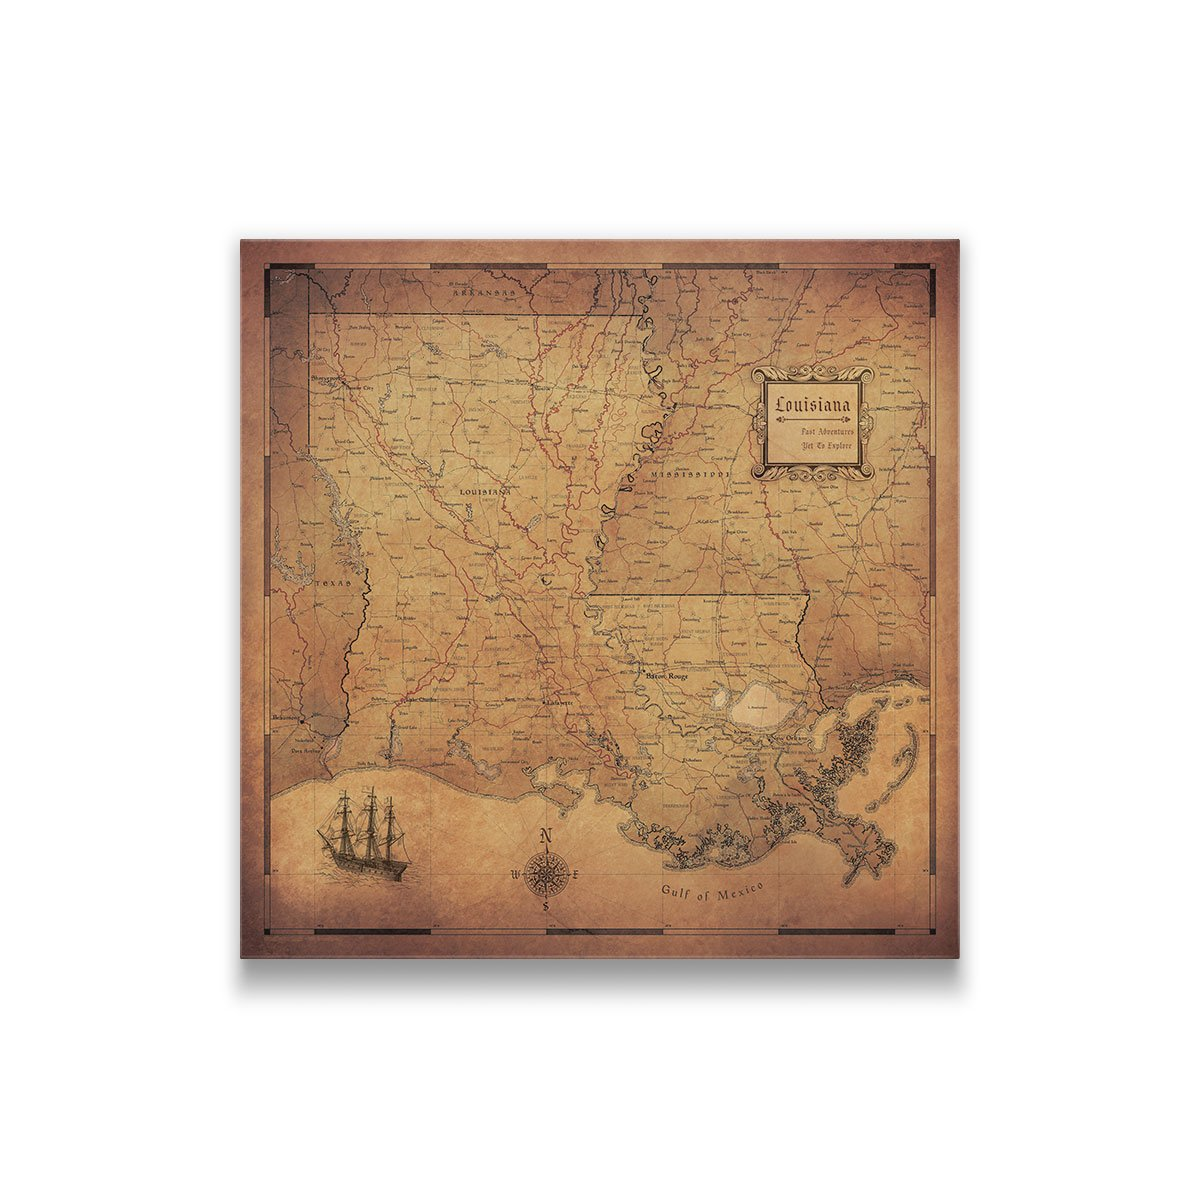 Current Map Of Louisiana.Louisiana Travel Map Pin Board With Push Pins Golden Aged